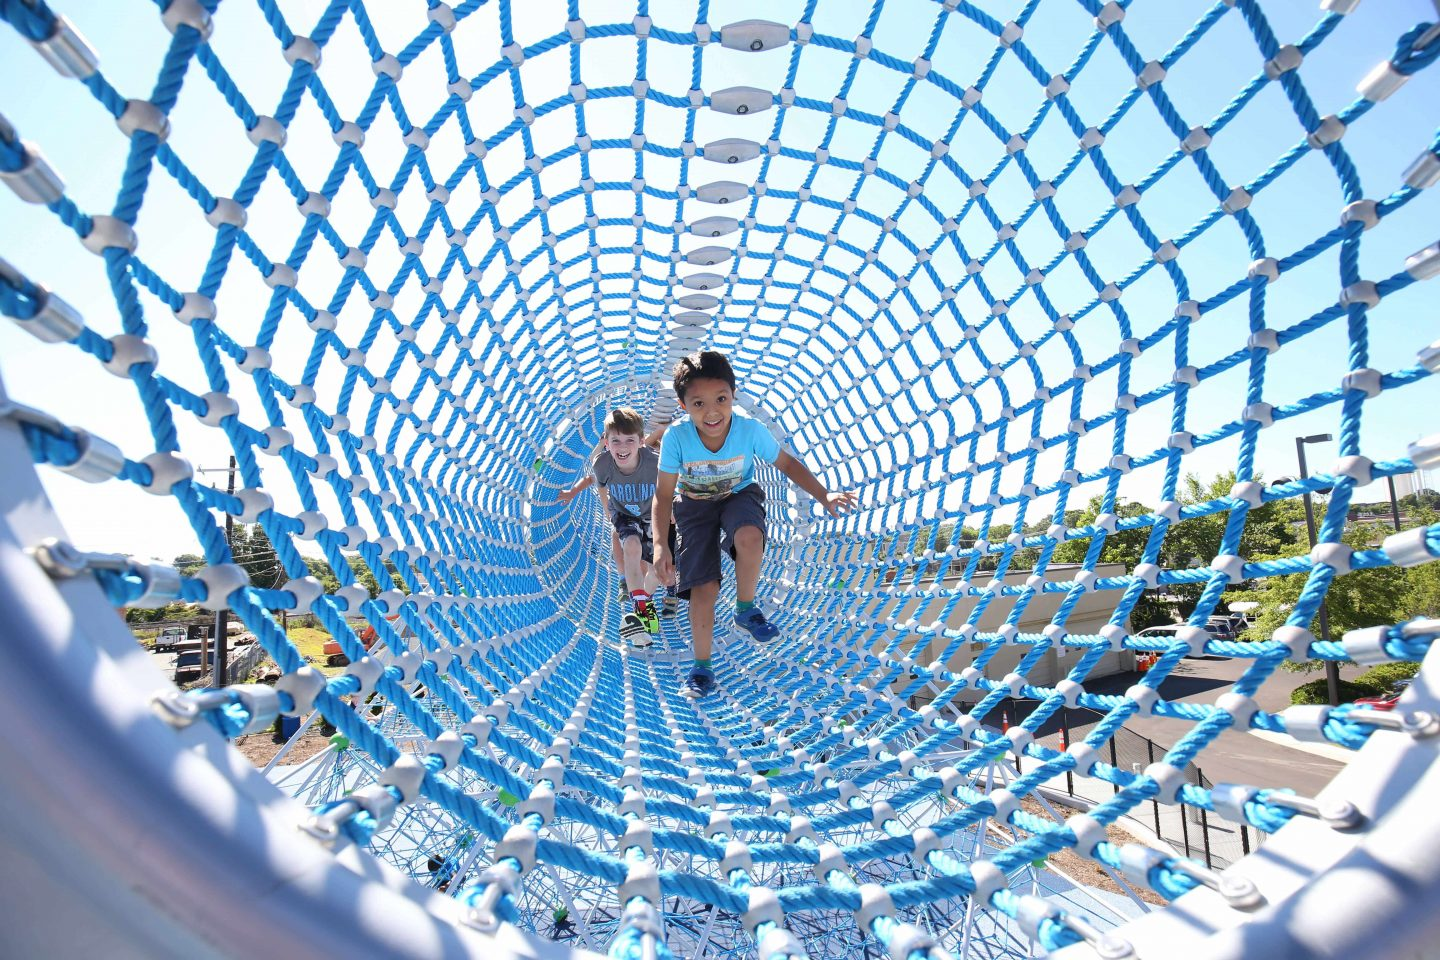 9-meter long net tunnel at 9-meter height of the Berliner Seilfabrik - play equipment for life